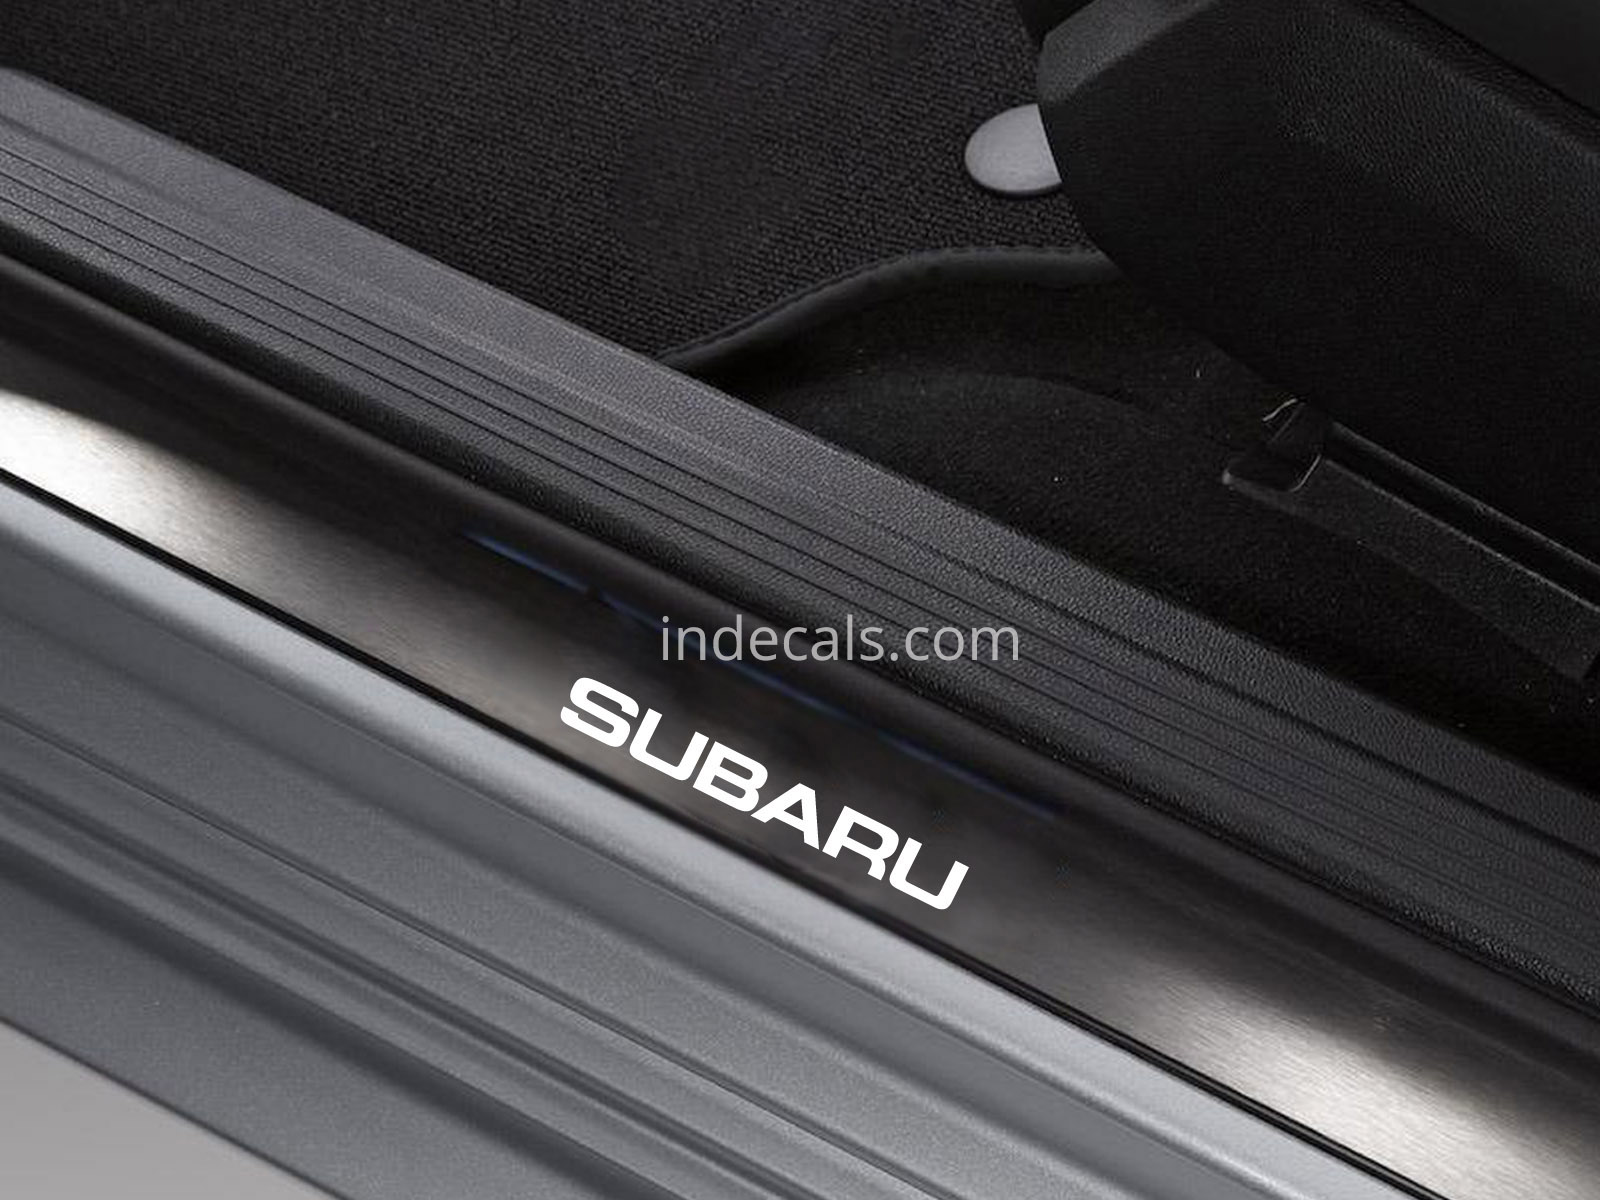 6 x Subaru Stickers for Door Sills - White